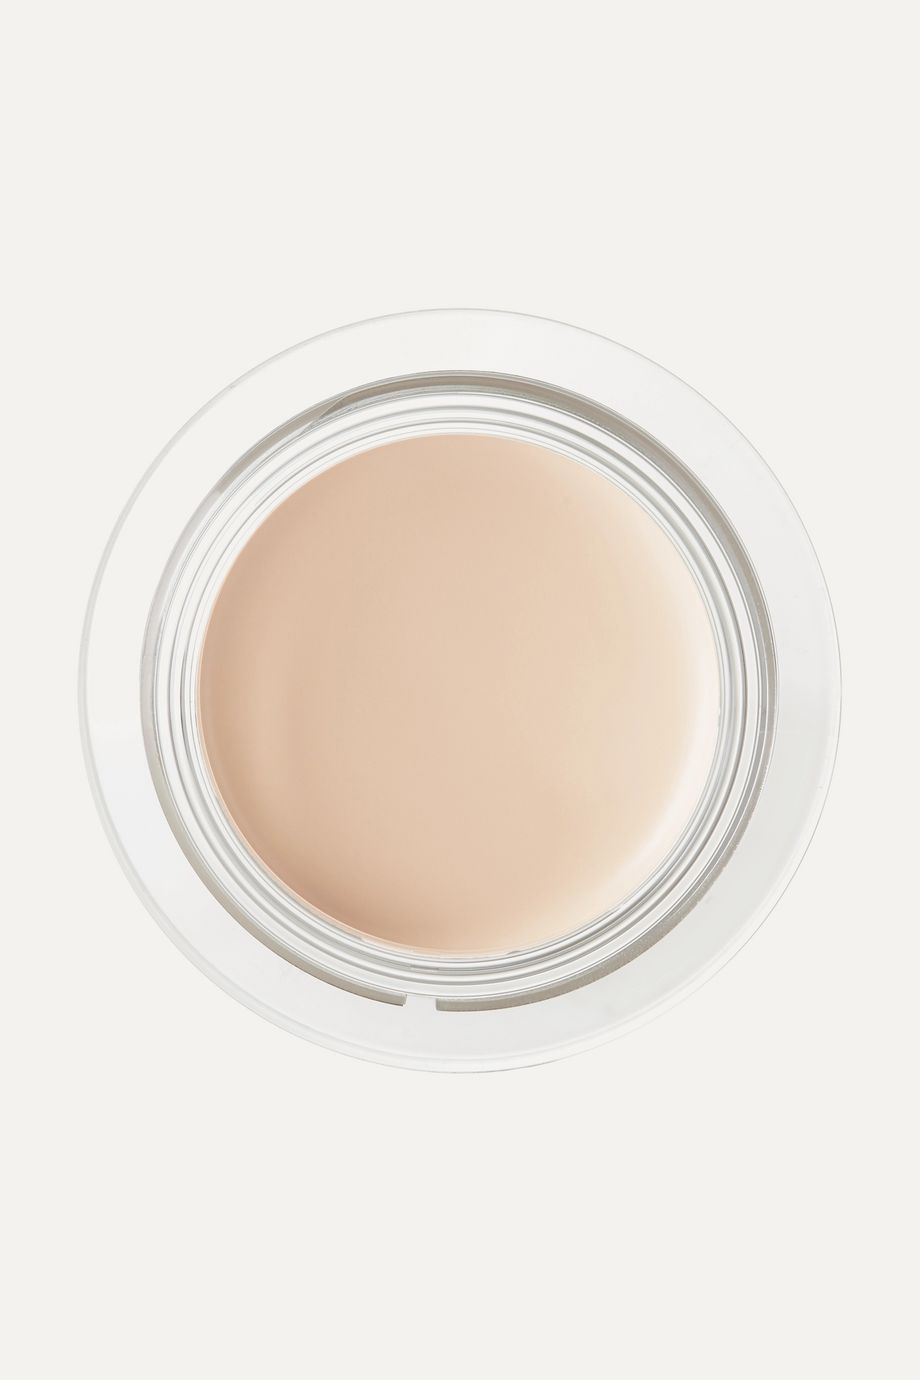 NARS Soft Matte Concealer - Chantilly, 6.2g